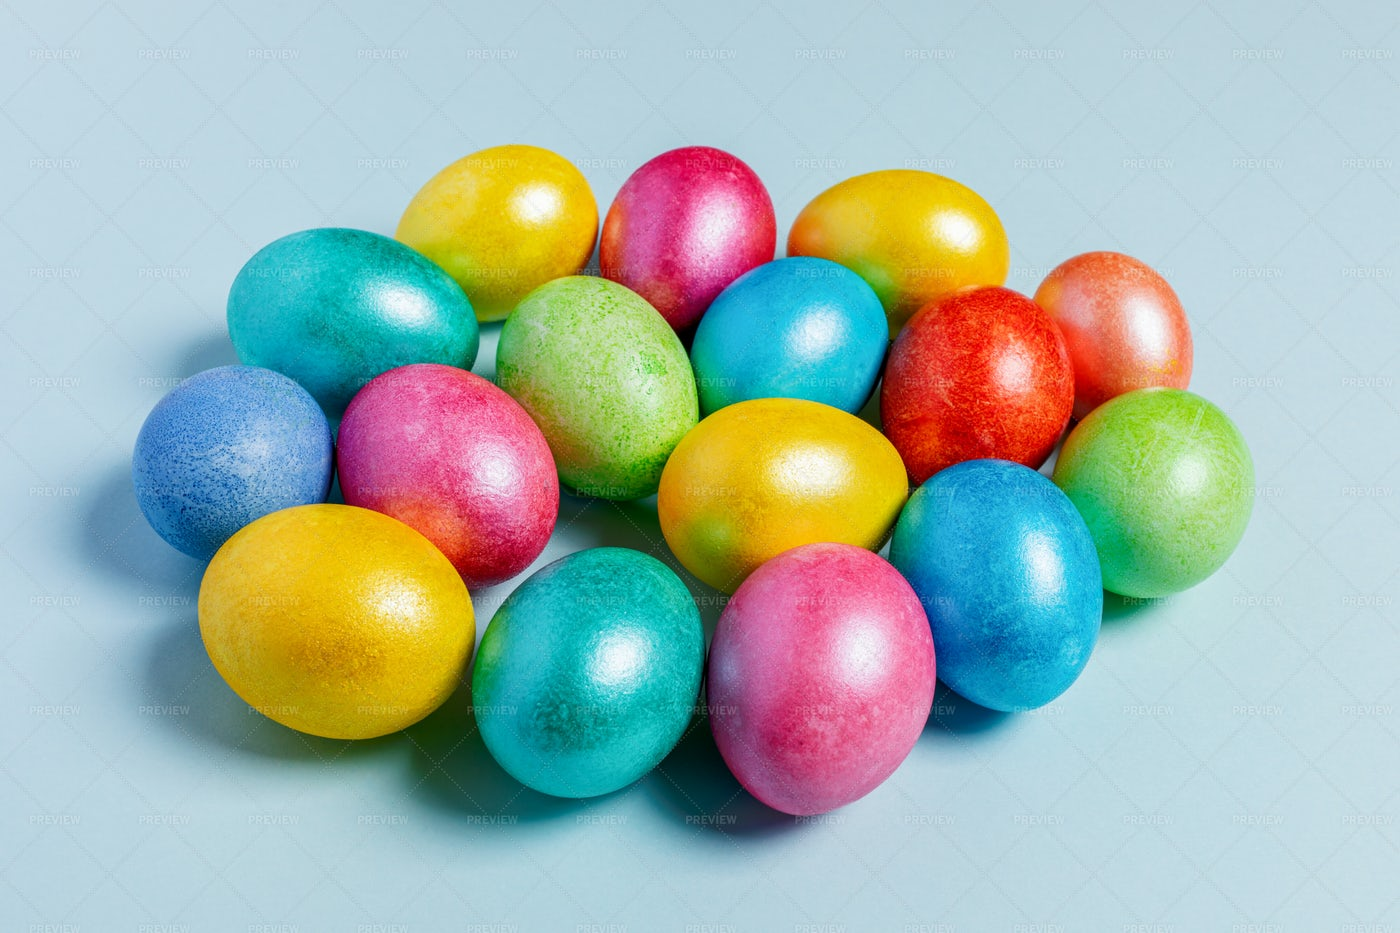 Colored Glossy Easter Eggs: Stock Photos